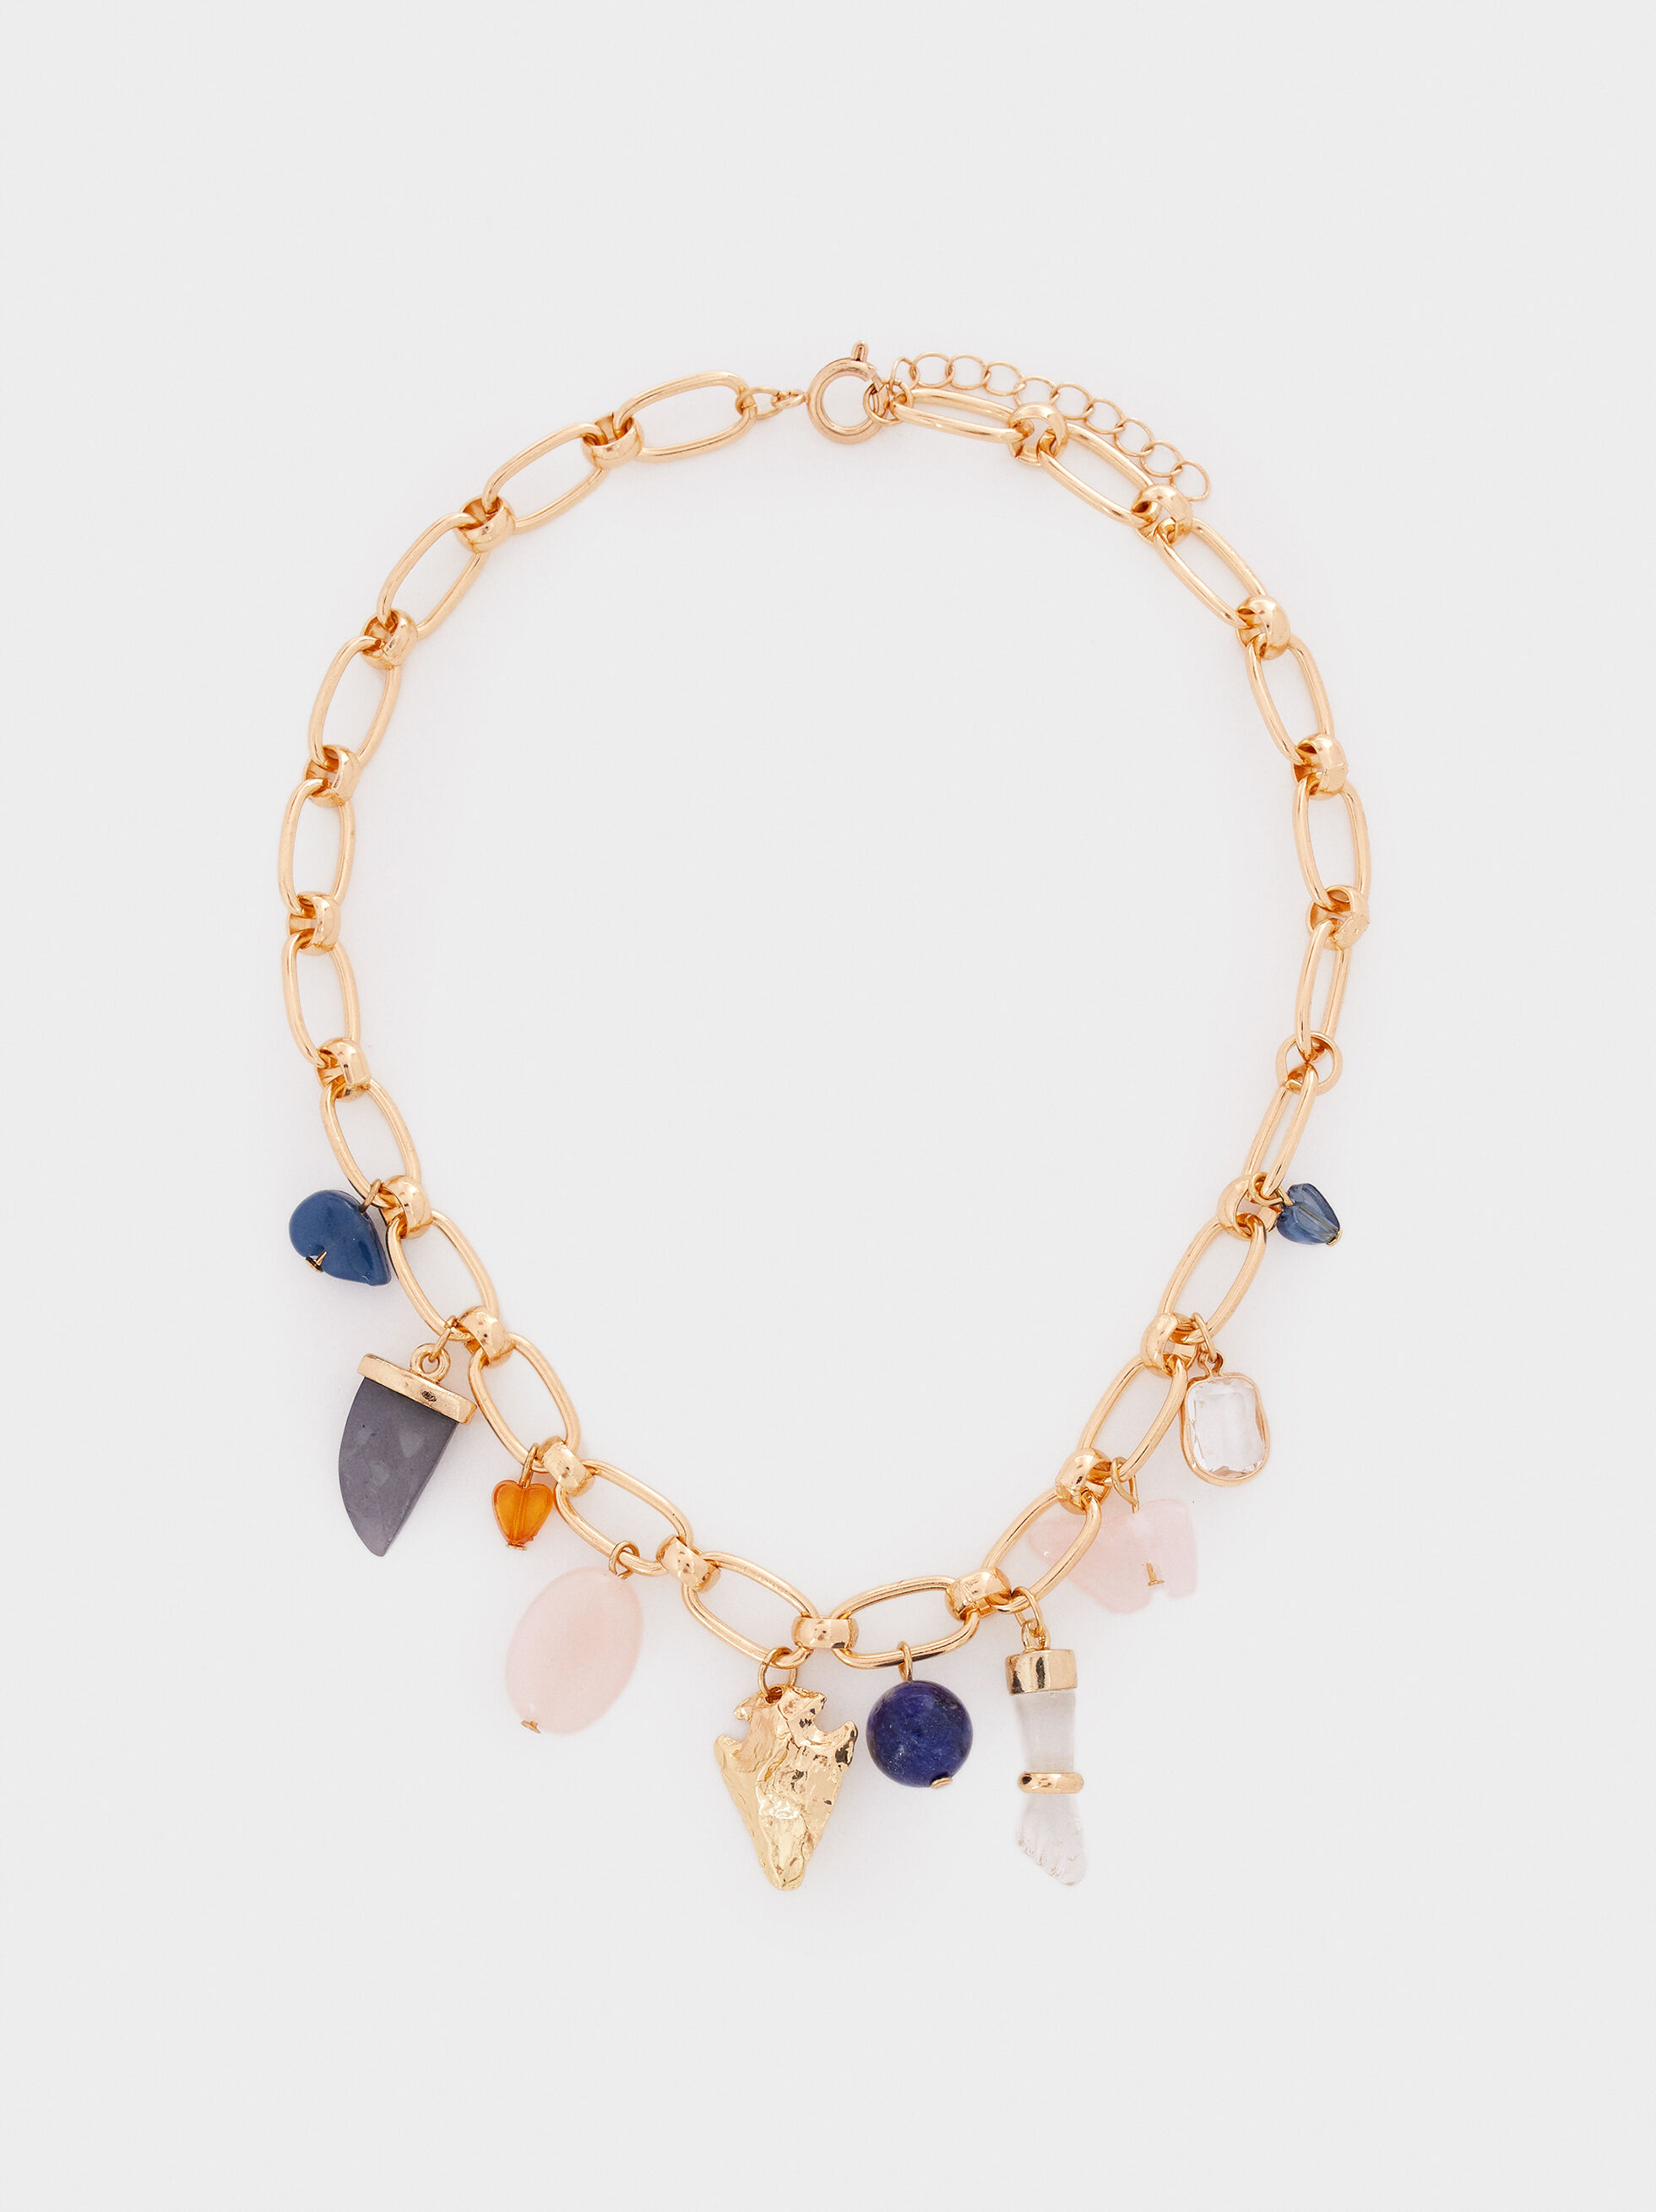 Short Necklace With Multicoloured Charms And Stones, Multicolor, hi-res